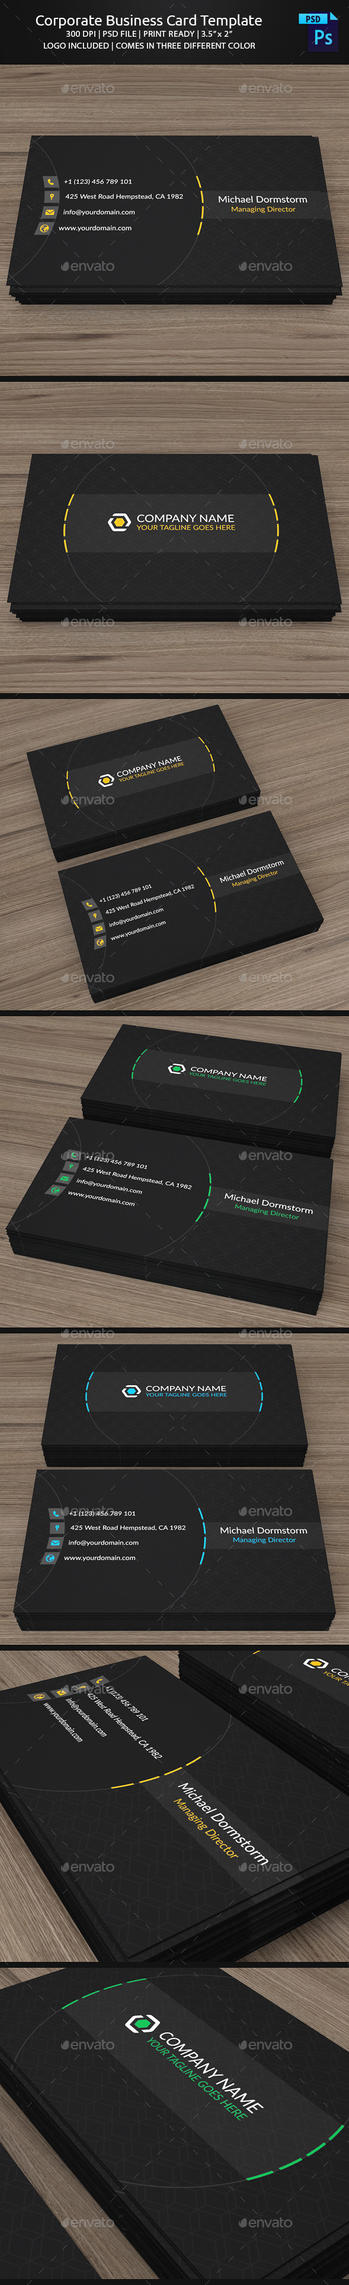 Corporate Business Card Template by aykutfiliz